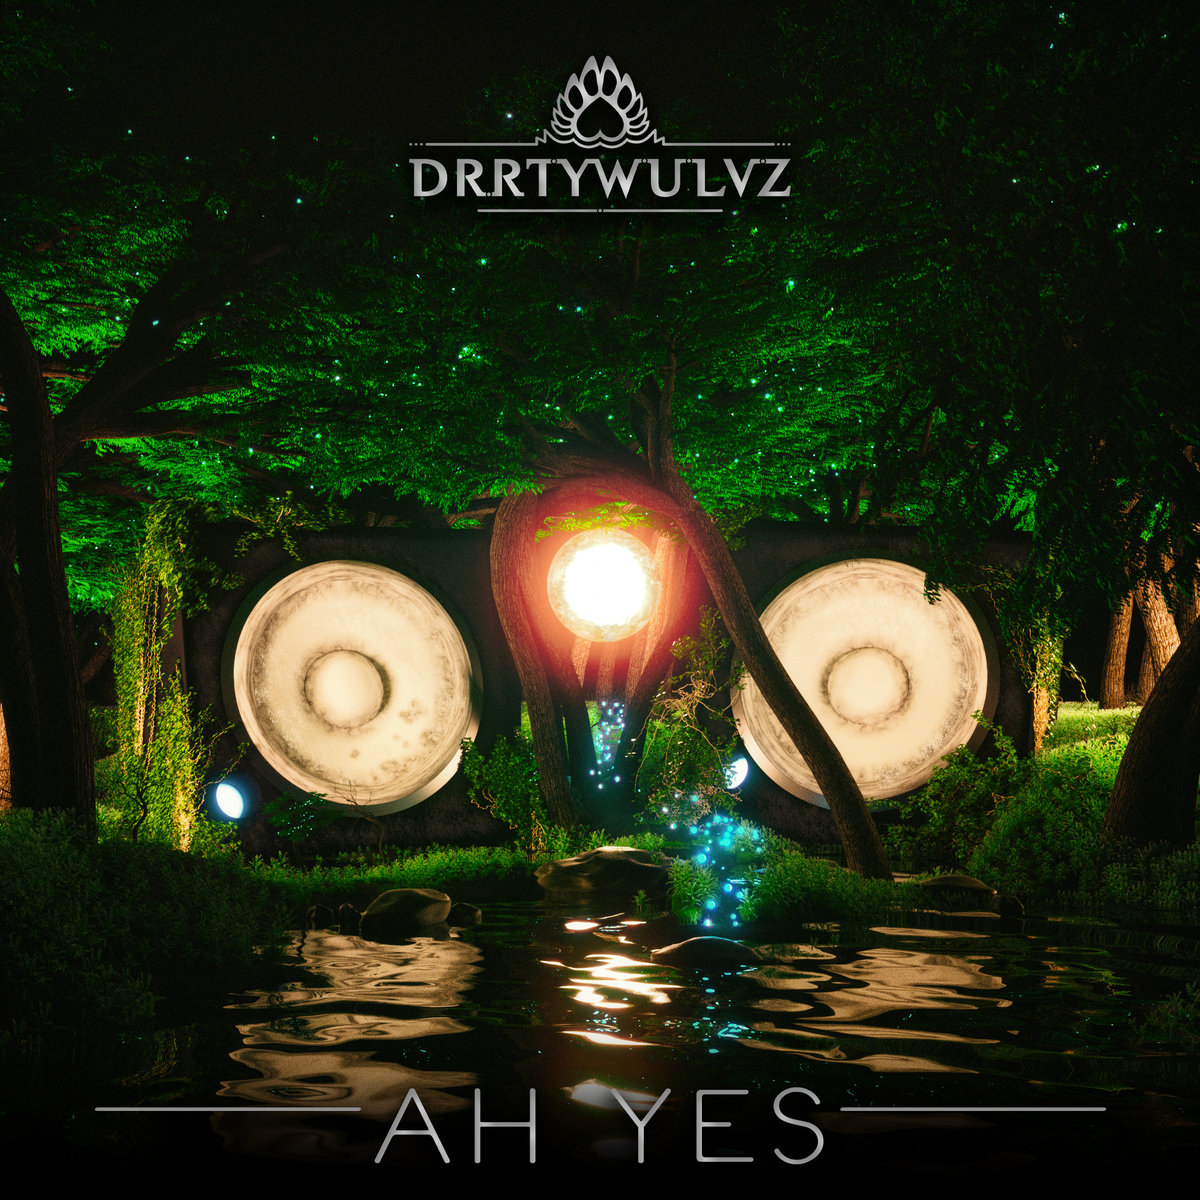 DRRTYWULVZ - Well Here We Are @ 'Ah Yes' album (bass, drrtywulvz)